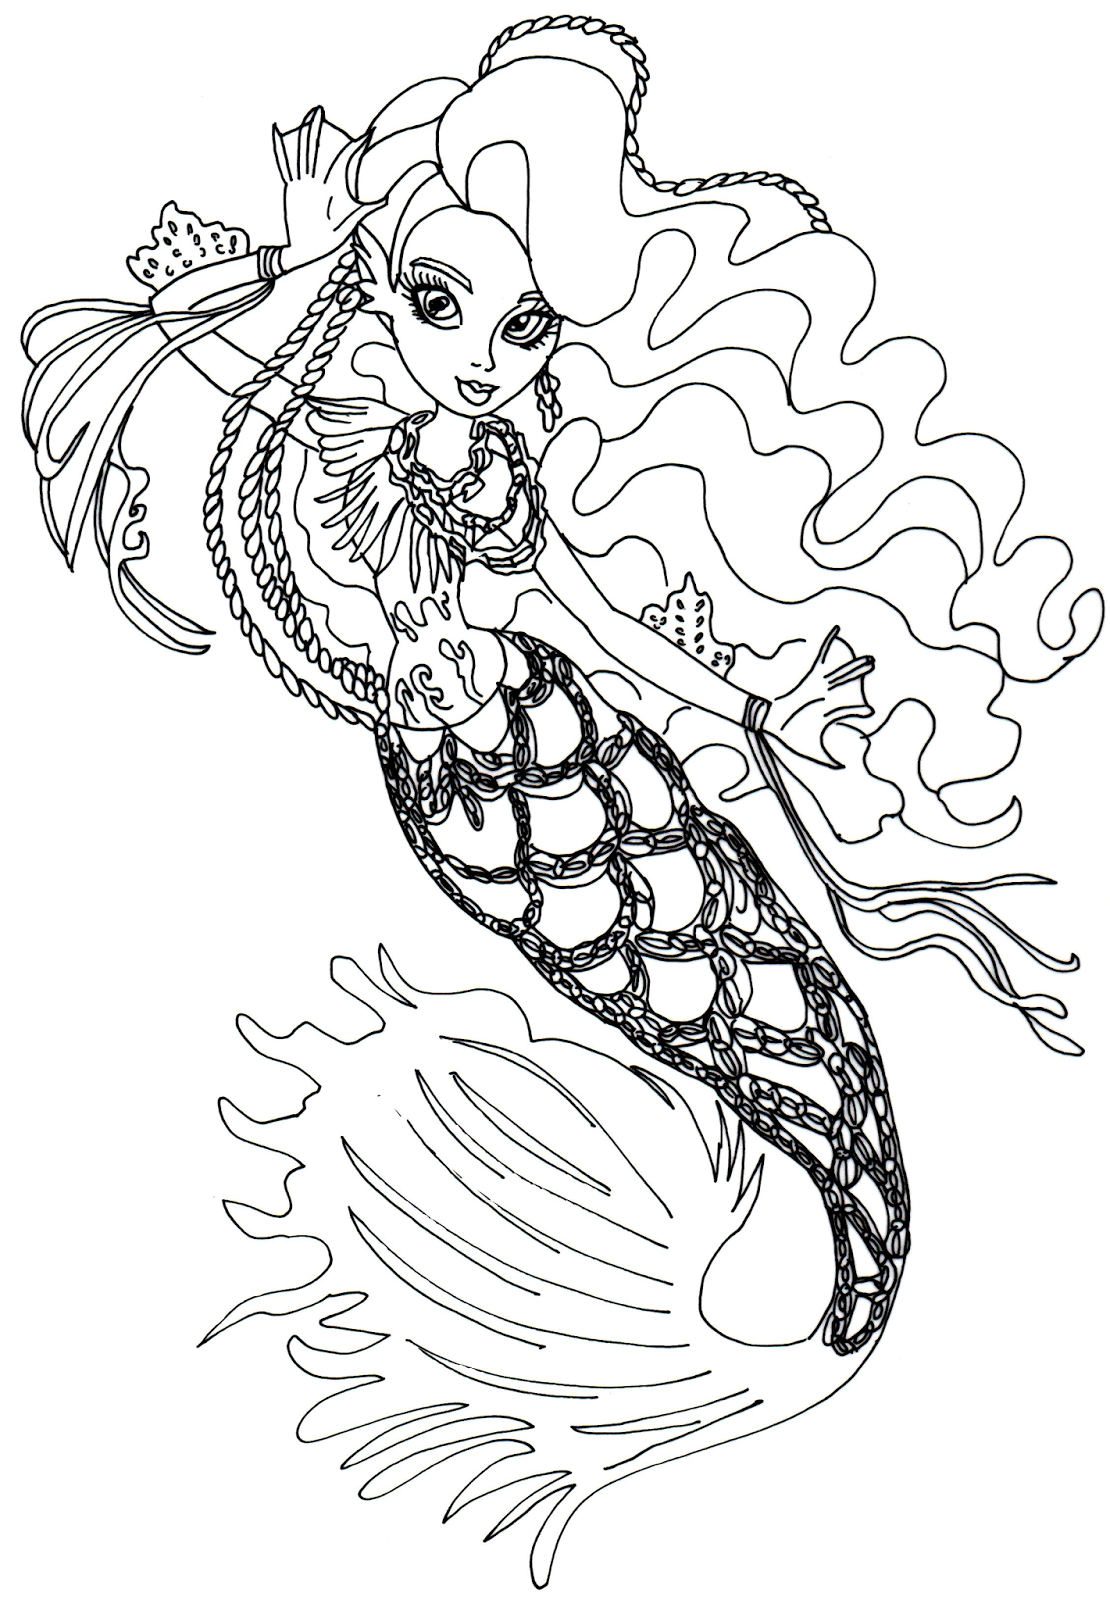 Coloring pages for Monster high printables coloring pages